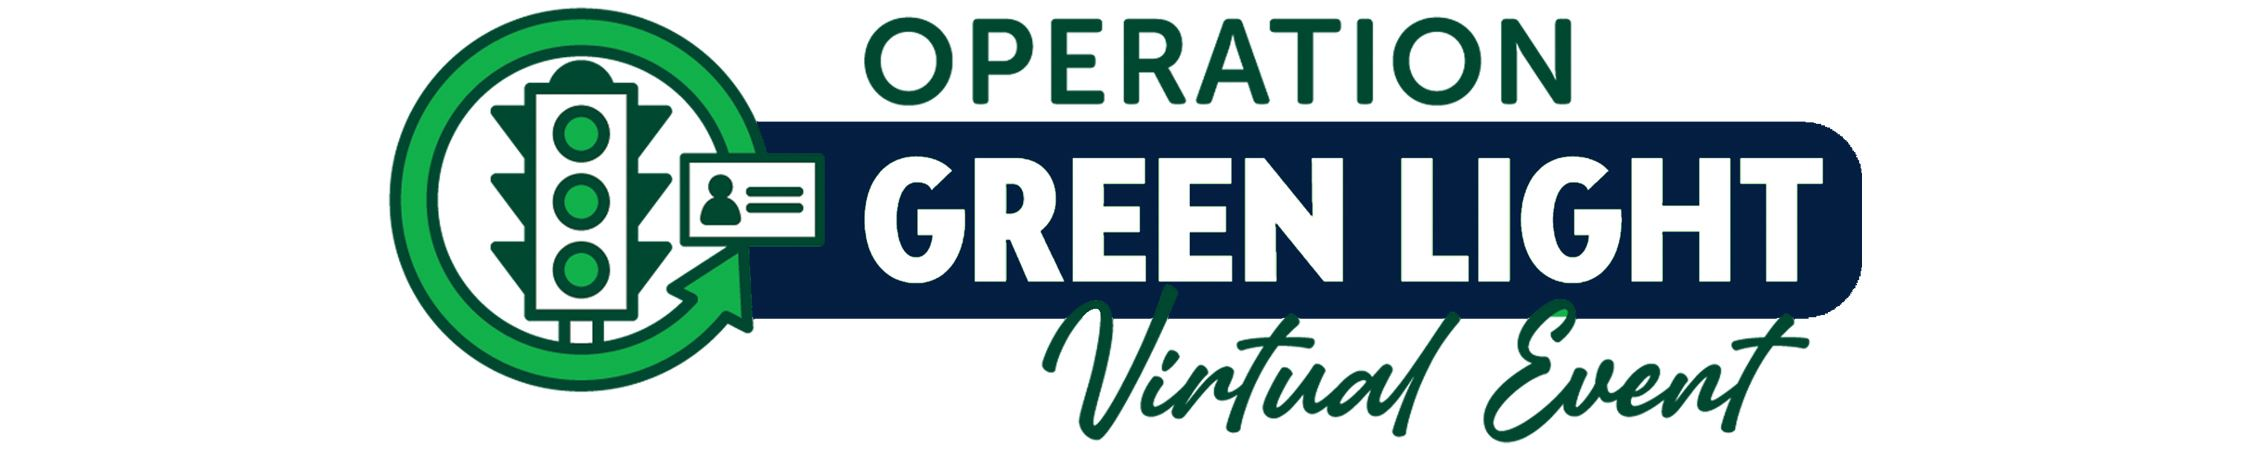 Operation Green Light Virtual Event Brand Image